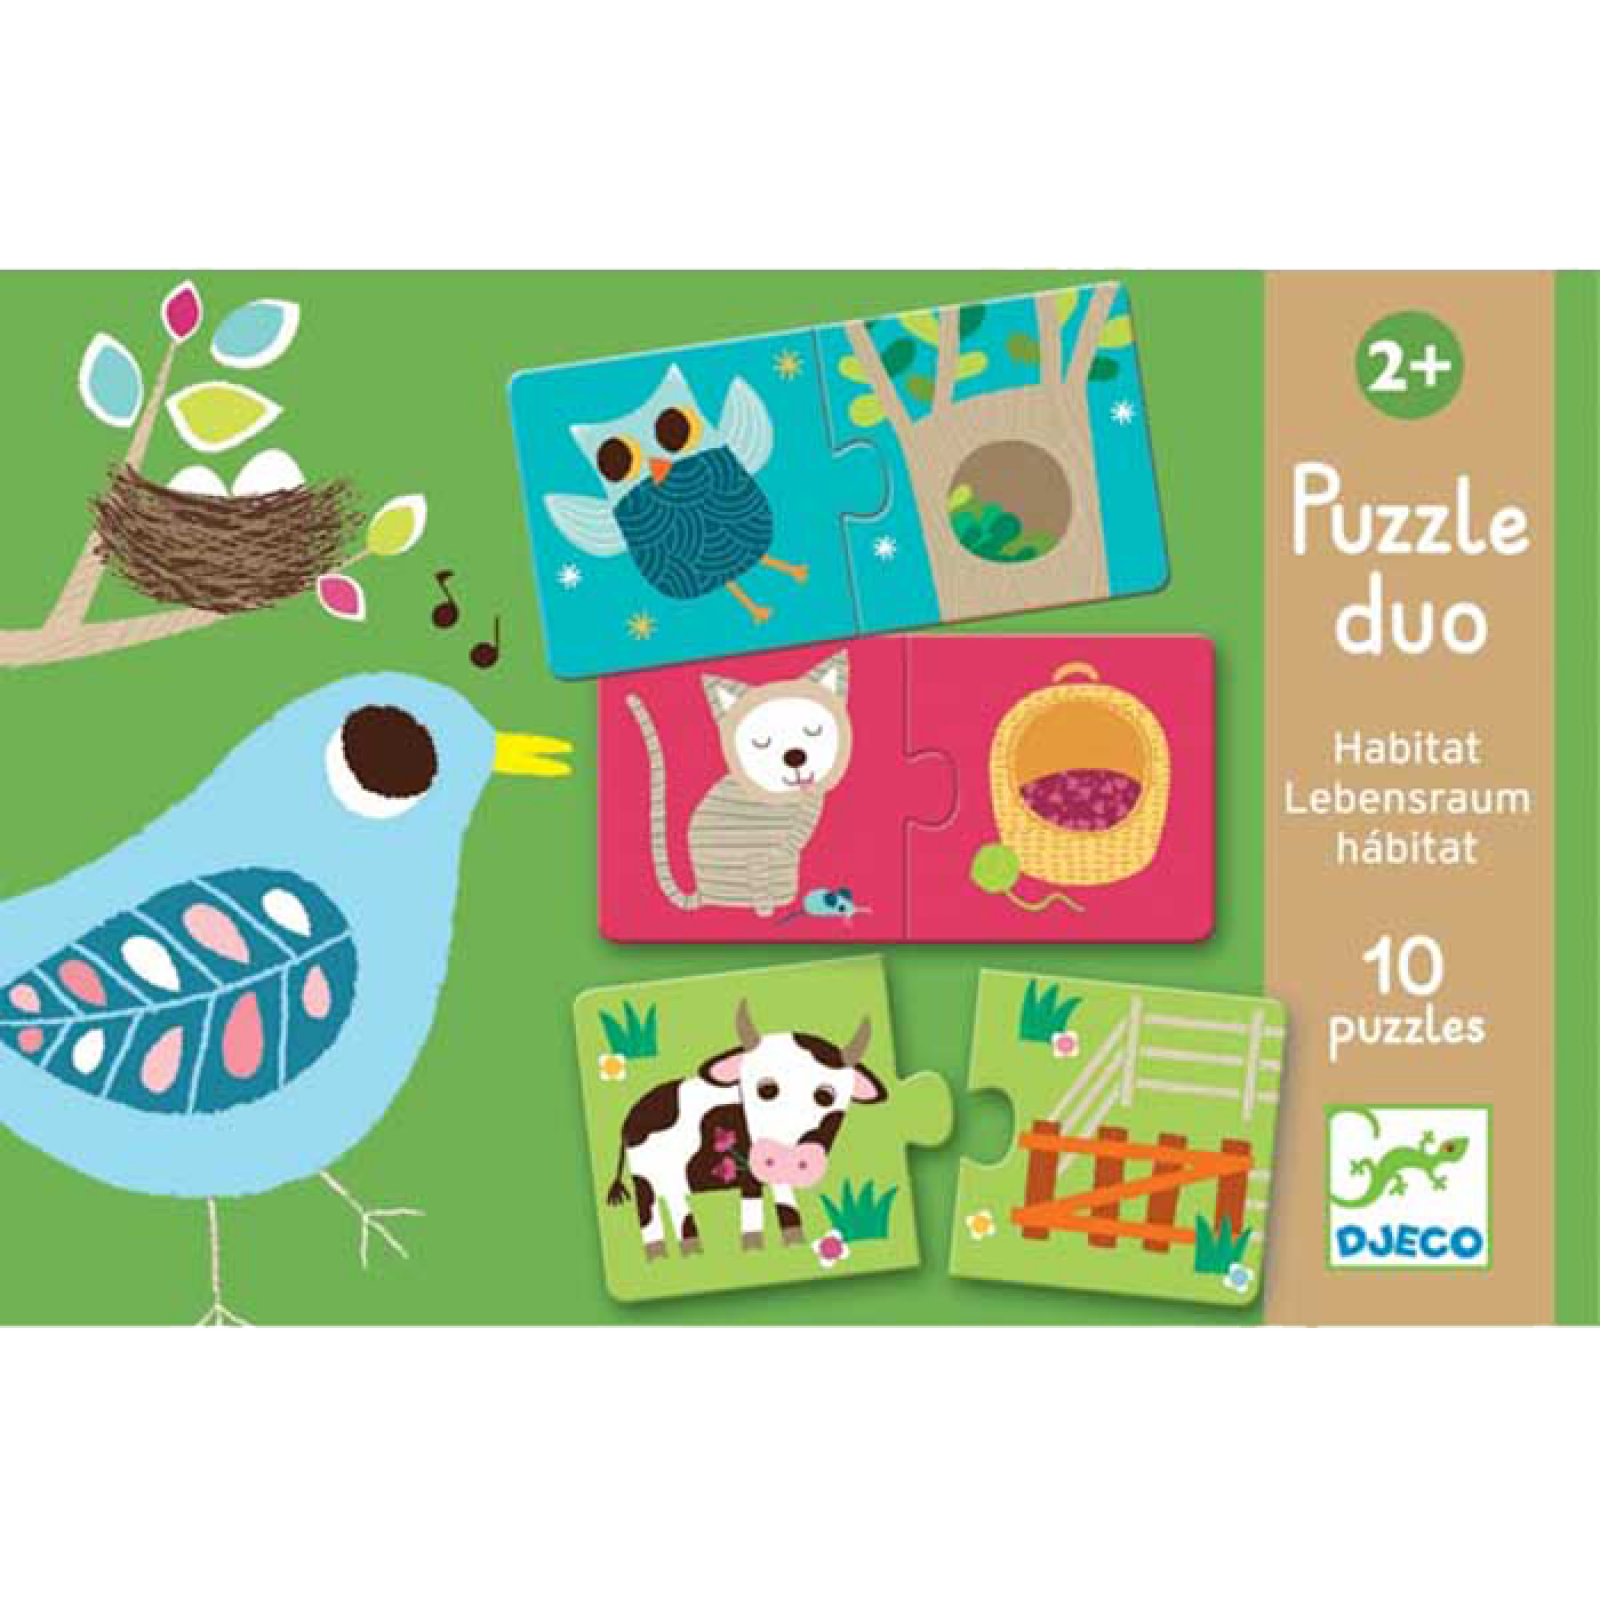 Habitat Puzzle Duo Game By Djeco 2+